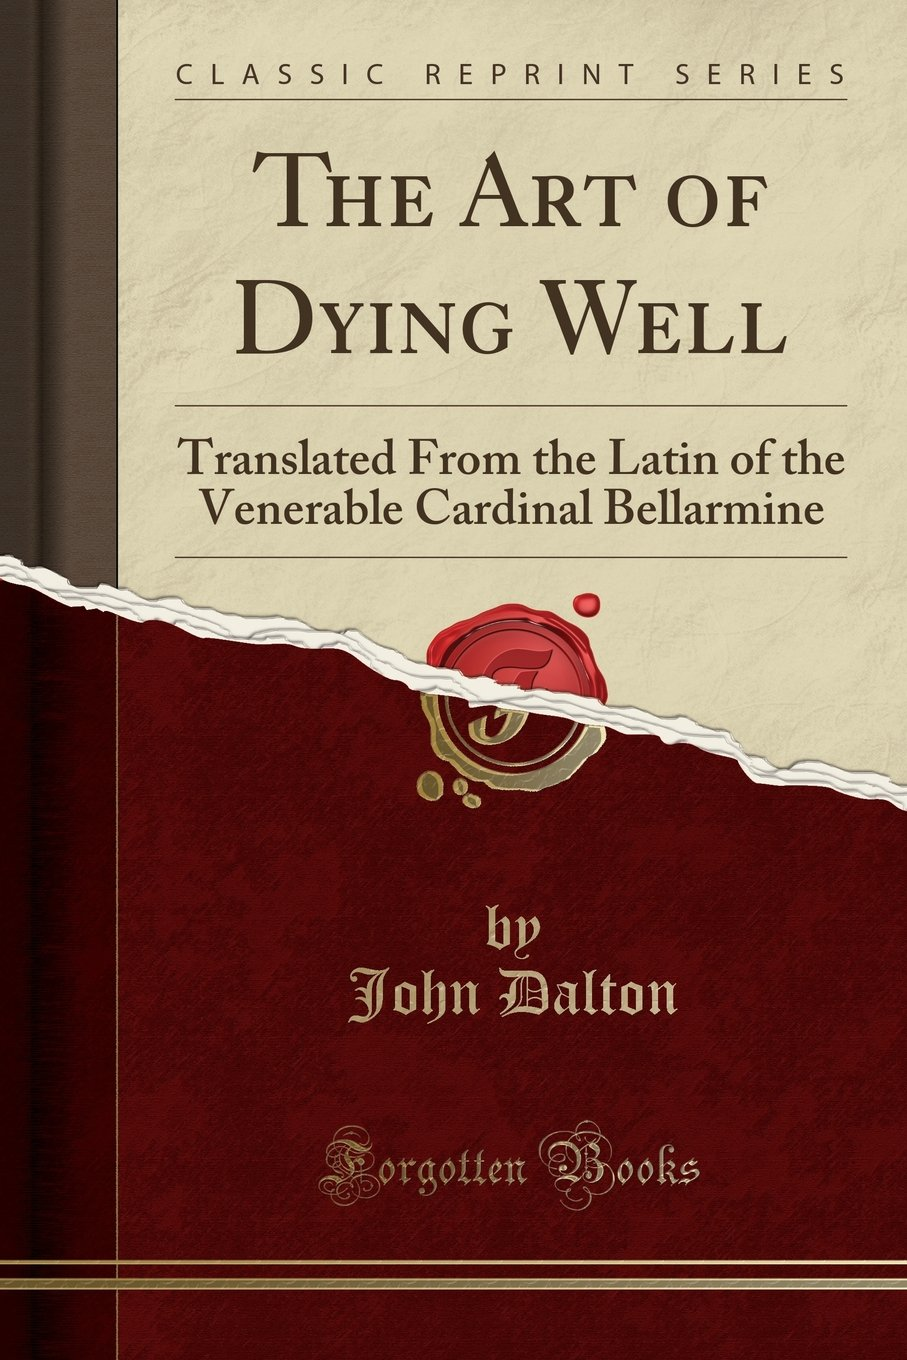 The Art of Dying Well: Translated From the Latin of the Venerable Cardinal Bellarmine (Classic Reprint) PDF